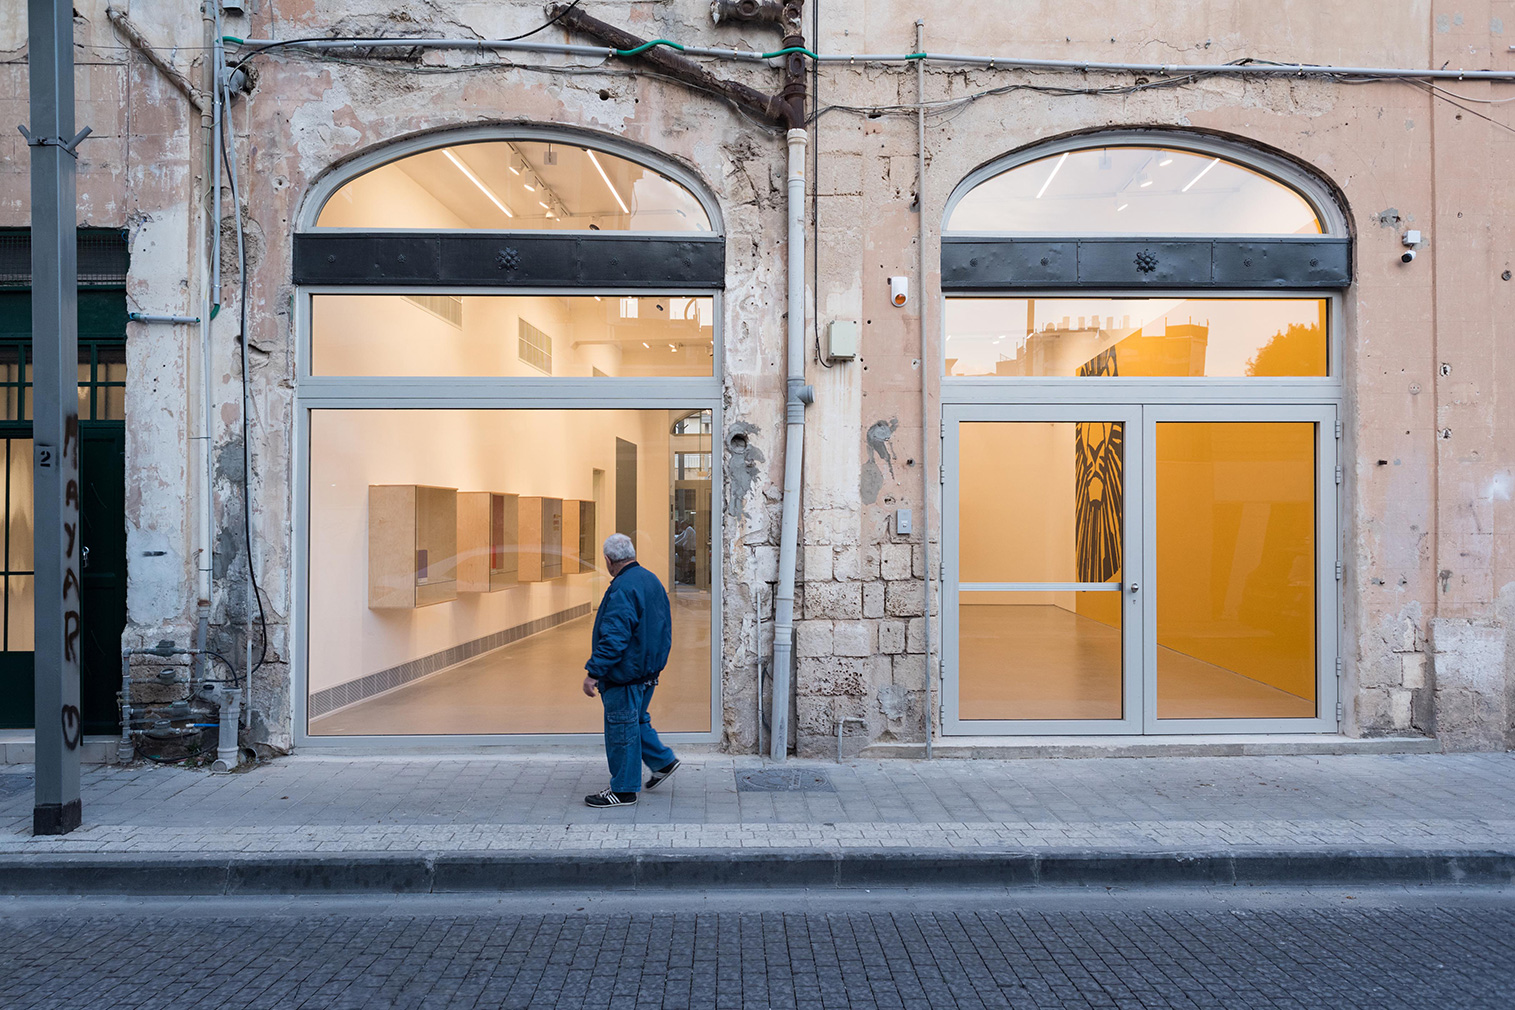 Magasin III gallery in Tel Aviv-Jaffa